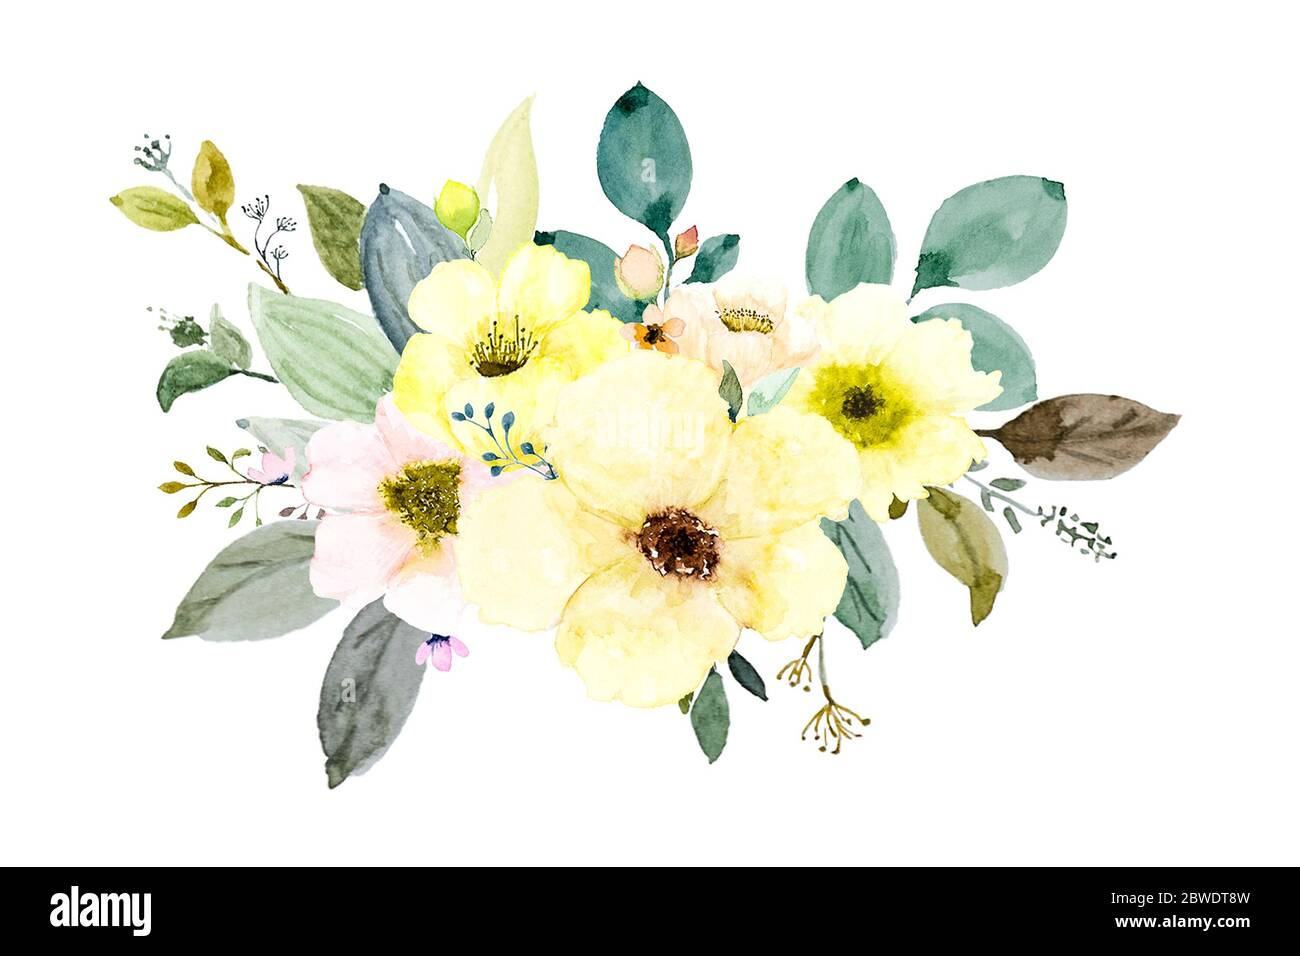 floral invitations Eucalyptus Wedding Watercolor Wreath /& Bouquets Anemone greeting card Helleborus Flowers Hand painted clipart